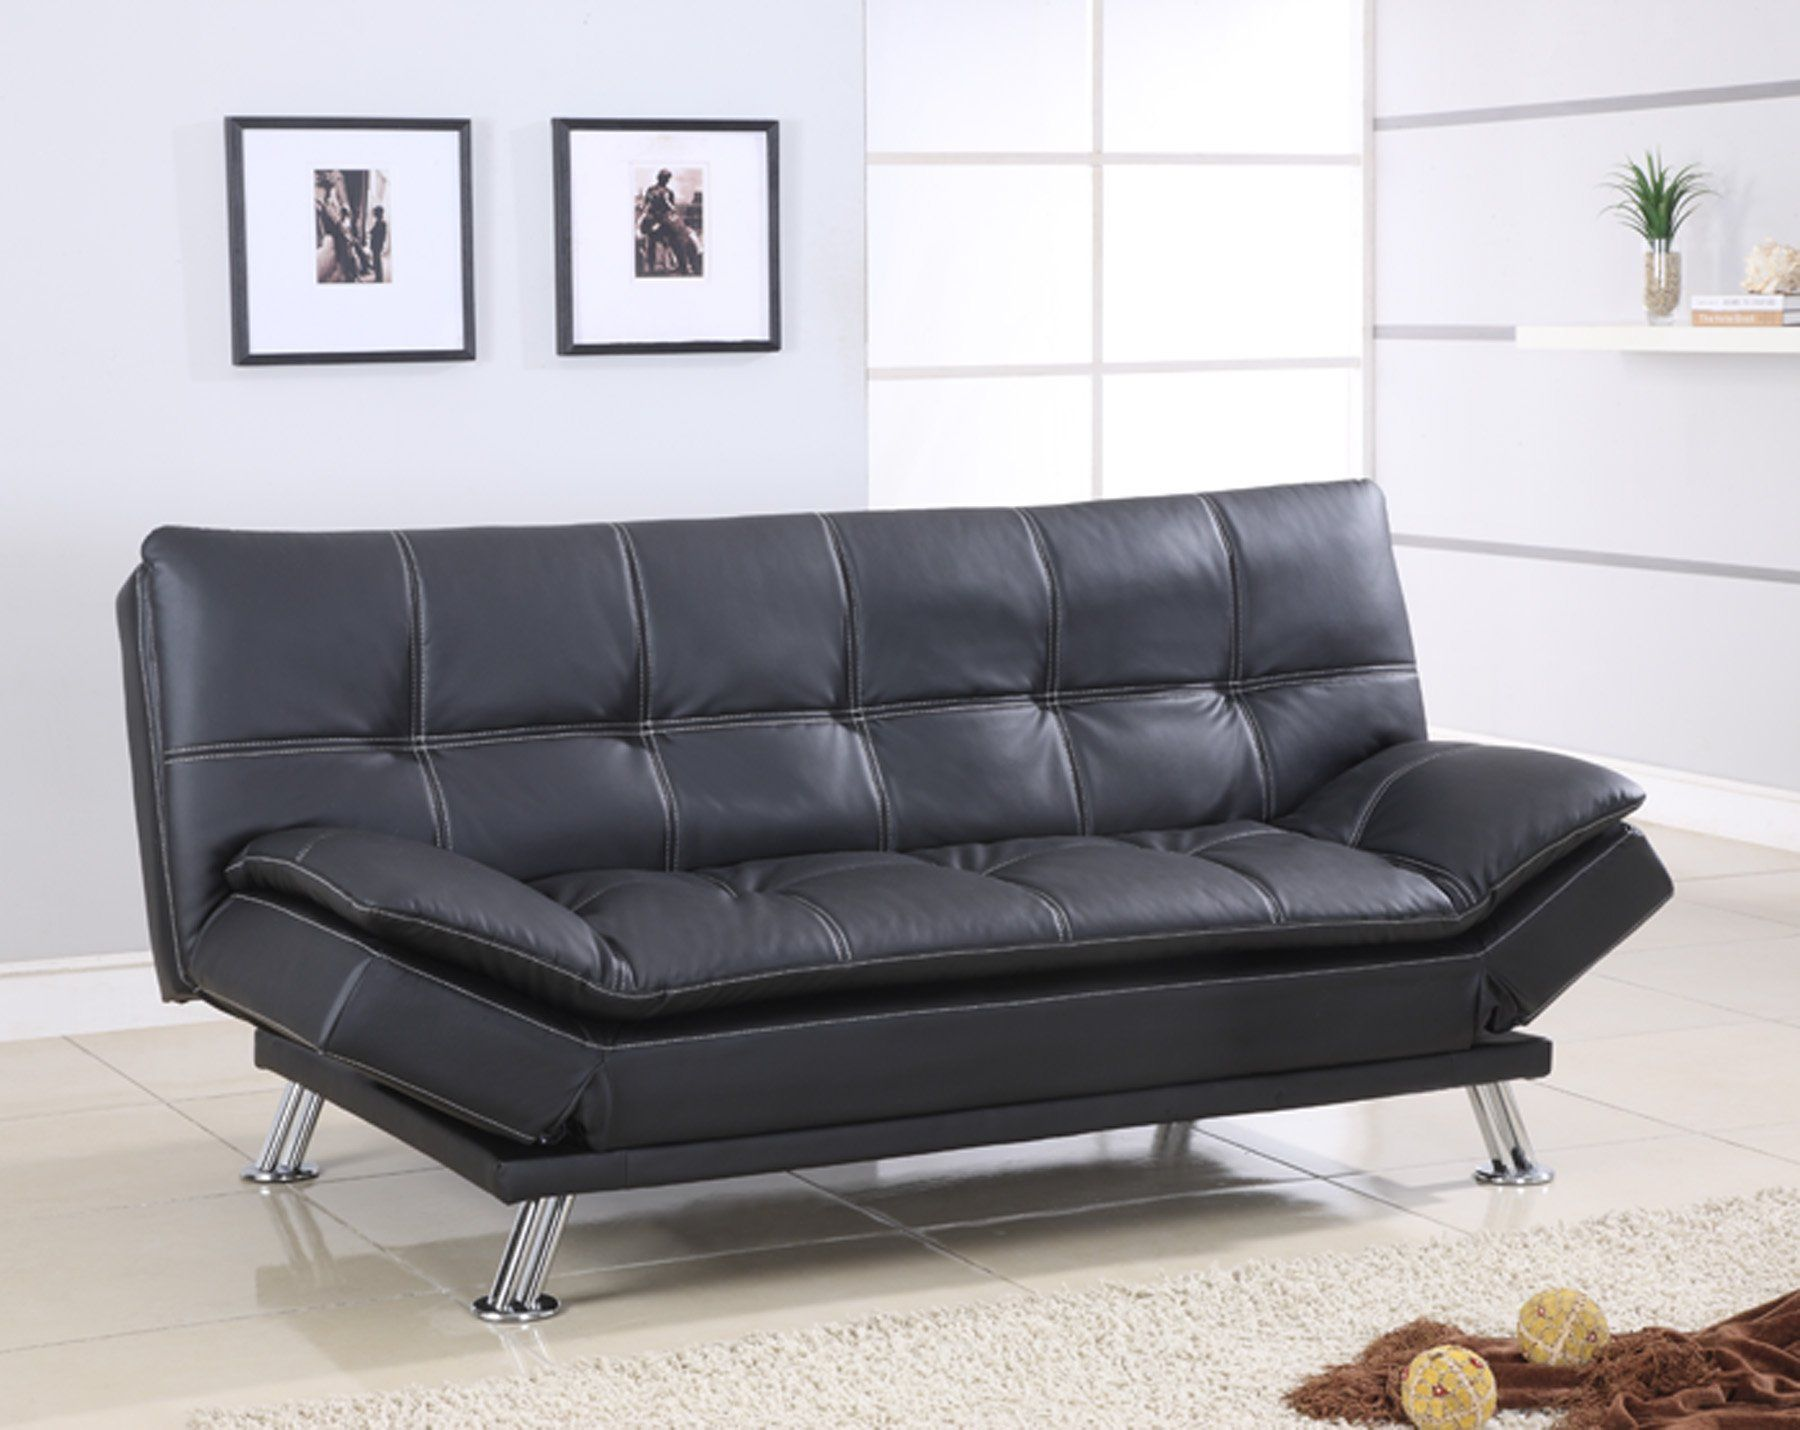 Best Quality Furniture S298 Sofa Bed Modern Faux Leather Black ...